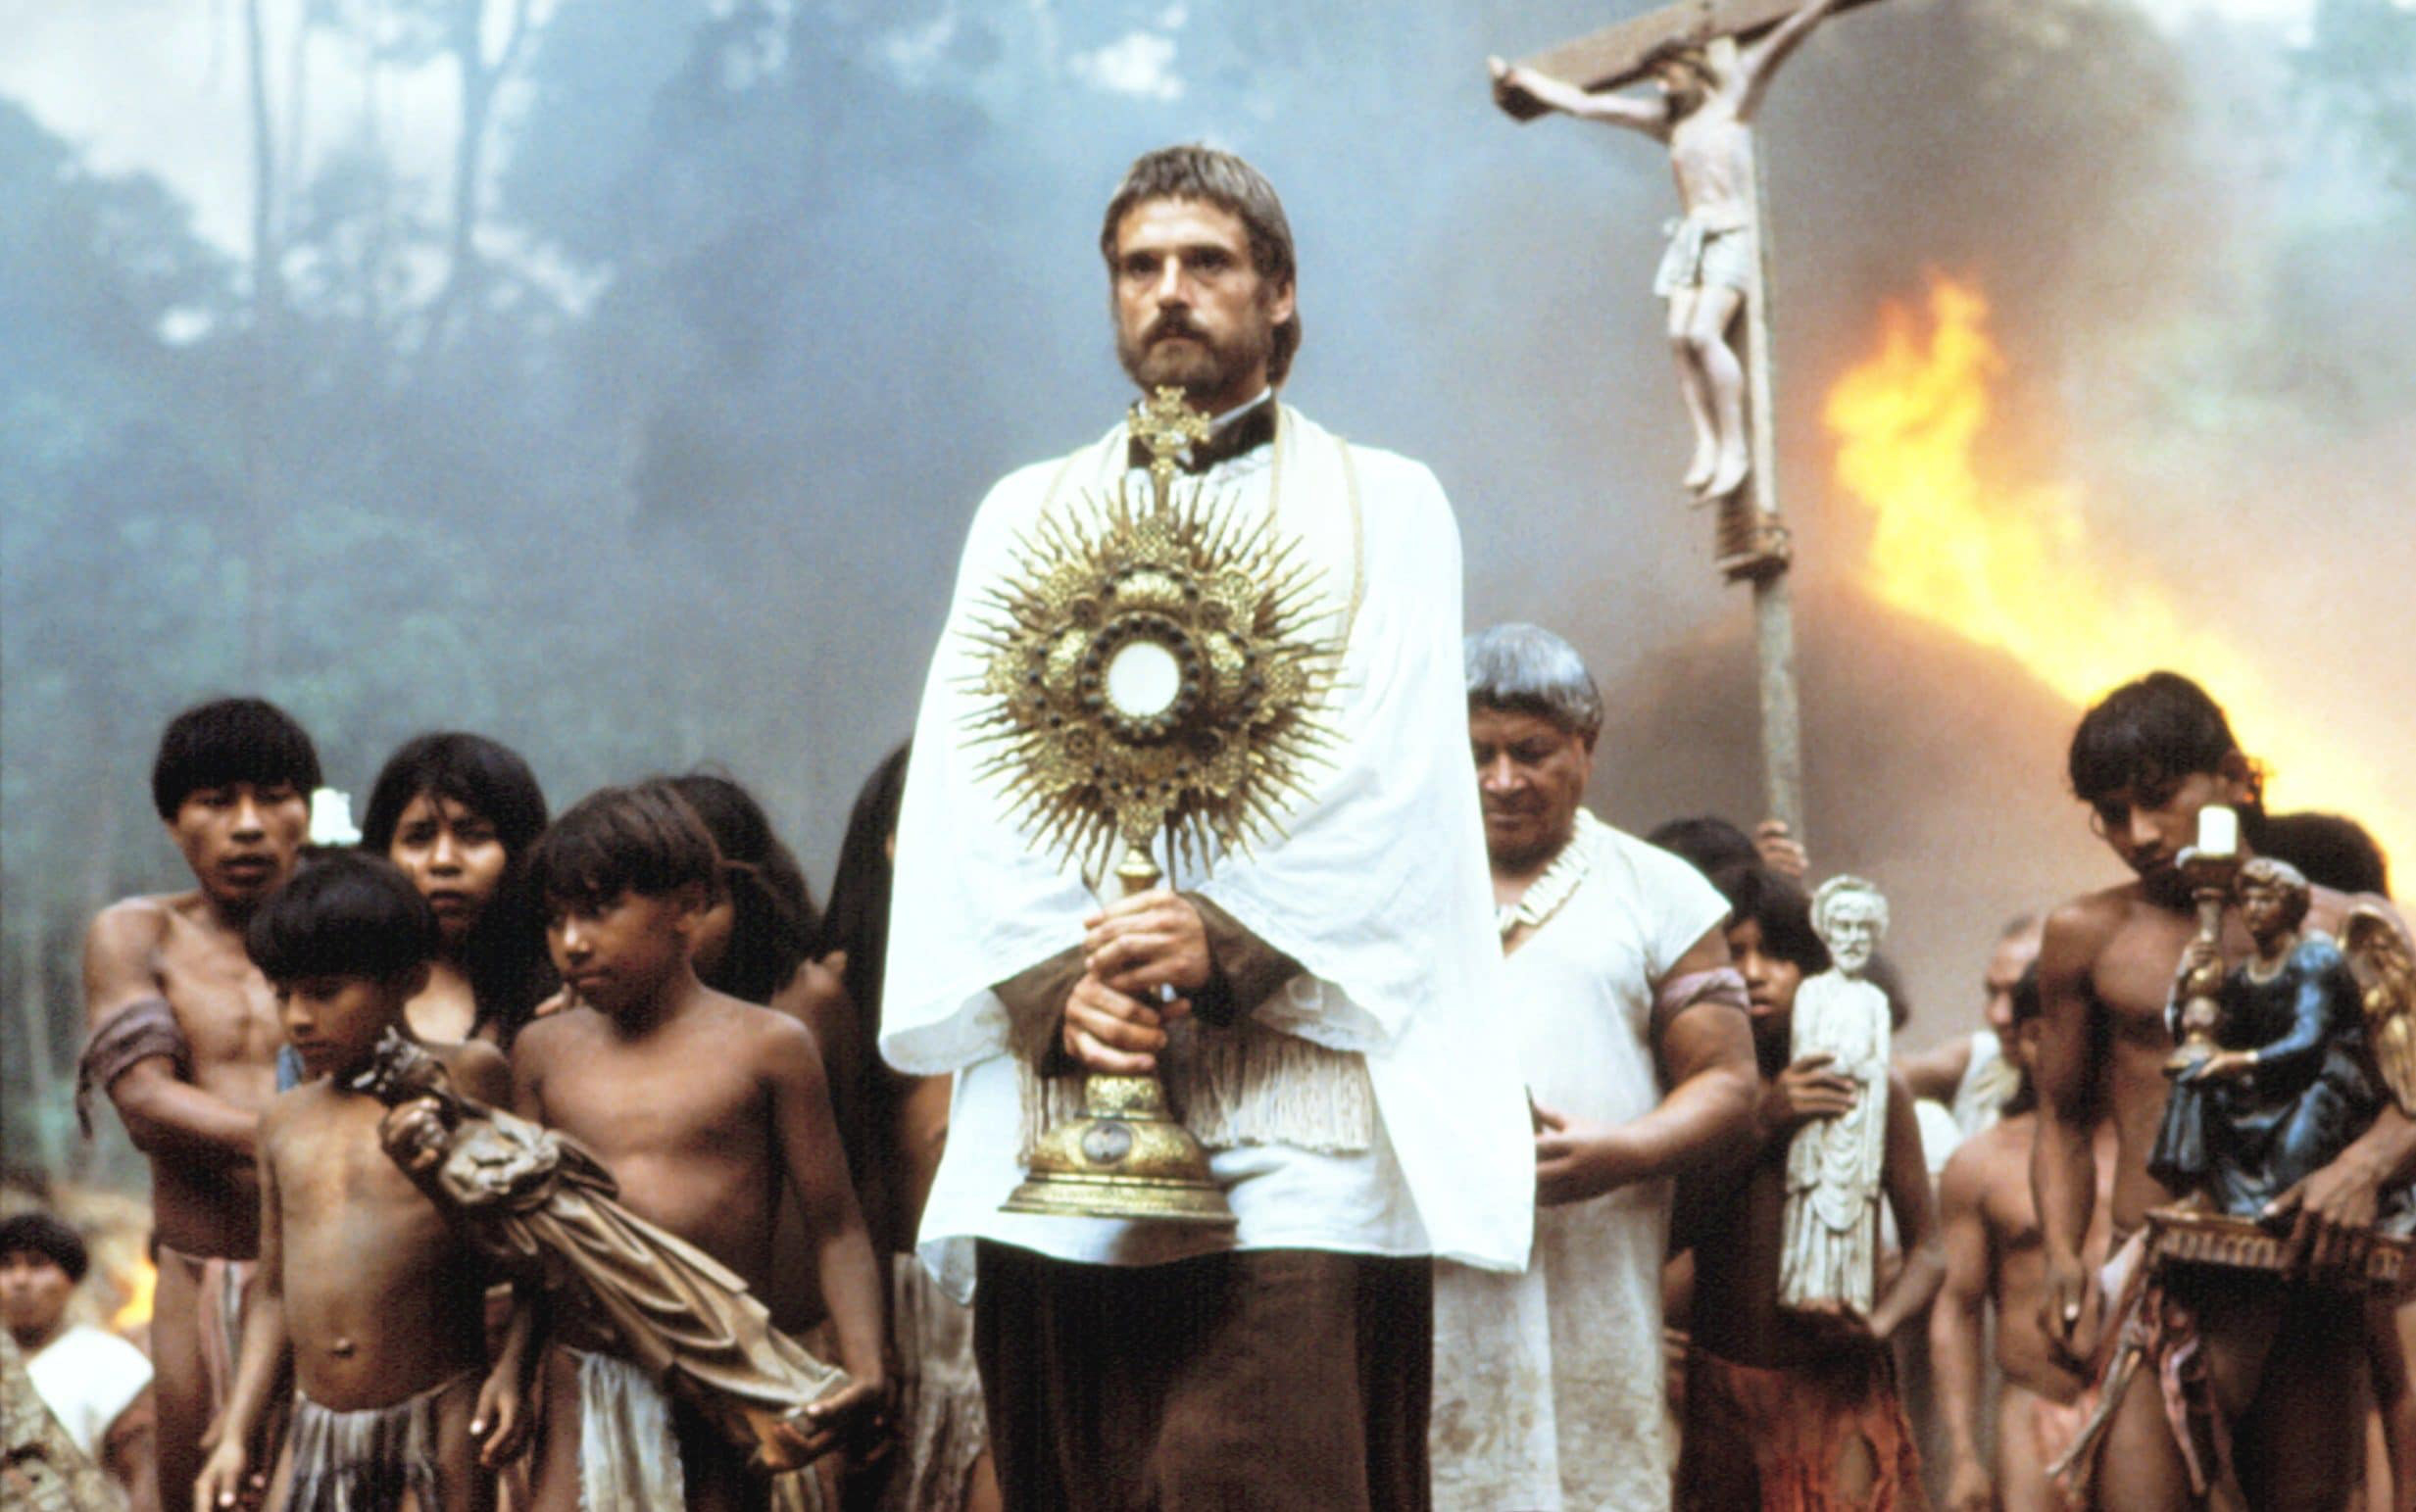 The Eucharist is The Most Powerful Thing in the World